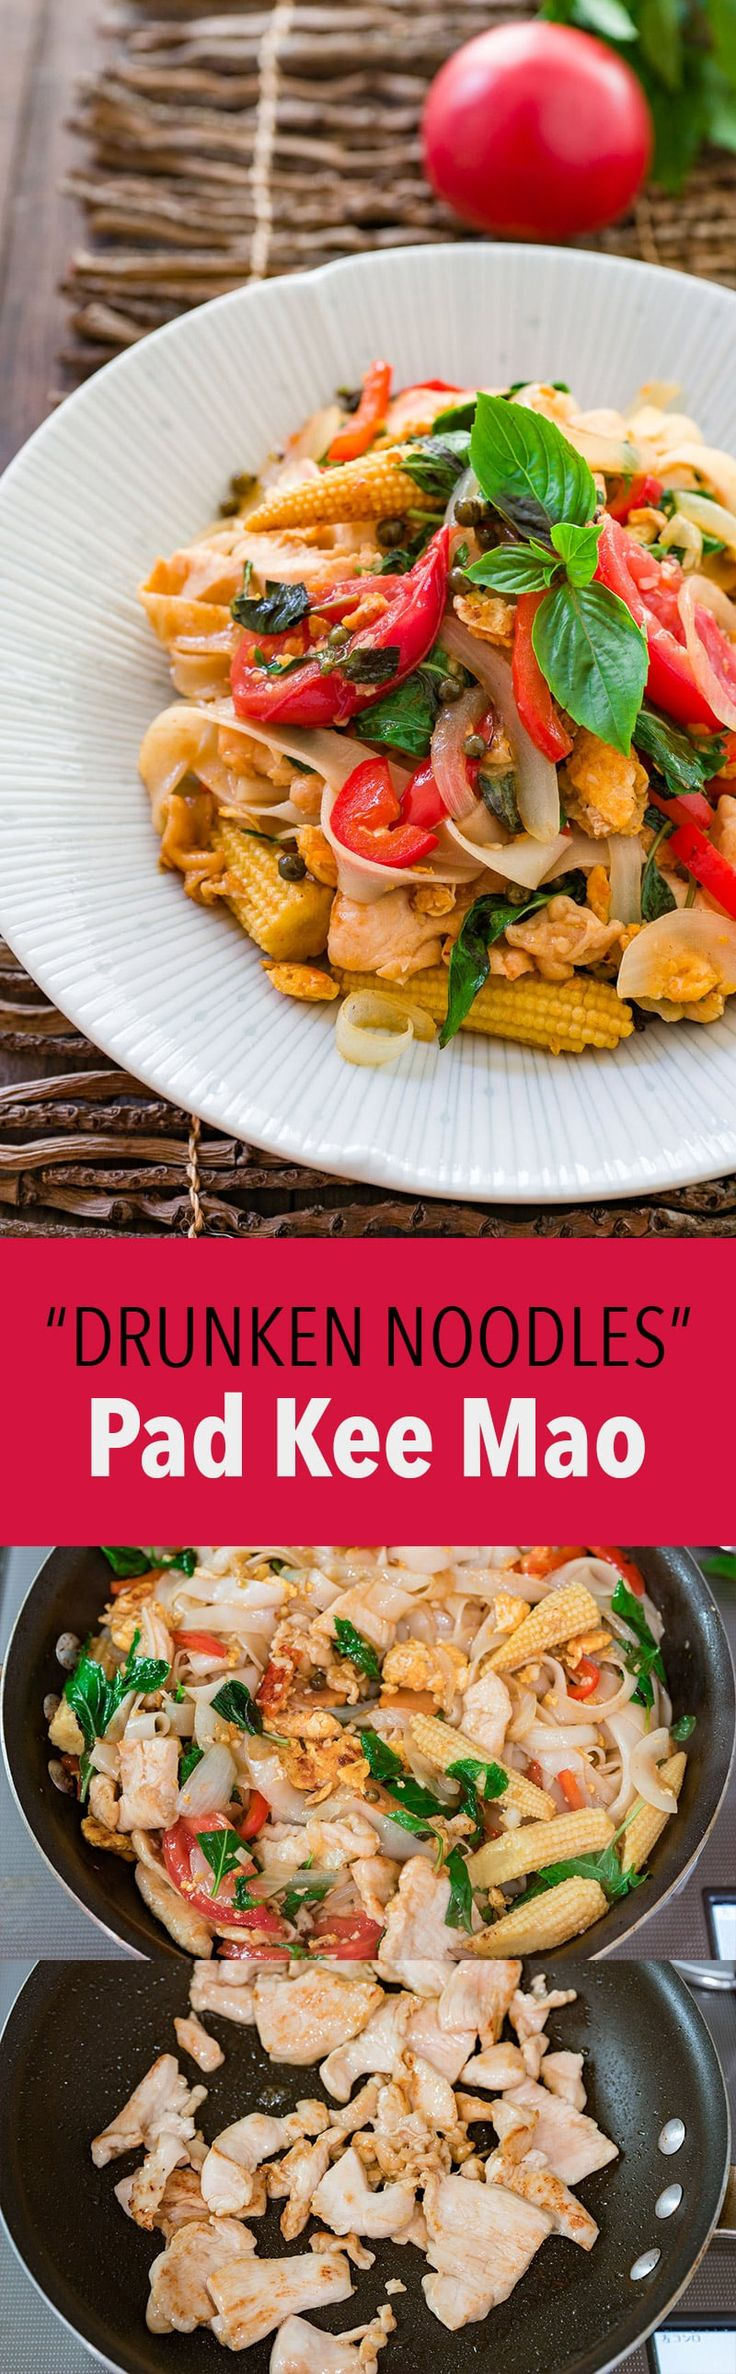 "Pad Kee Mao literally means ""fried drunkard"" but it's a delightfully flavorful Thai noodle dish loaded with a random assortment of vegetables and protein."